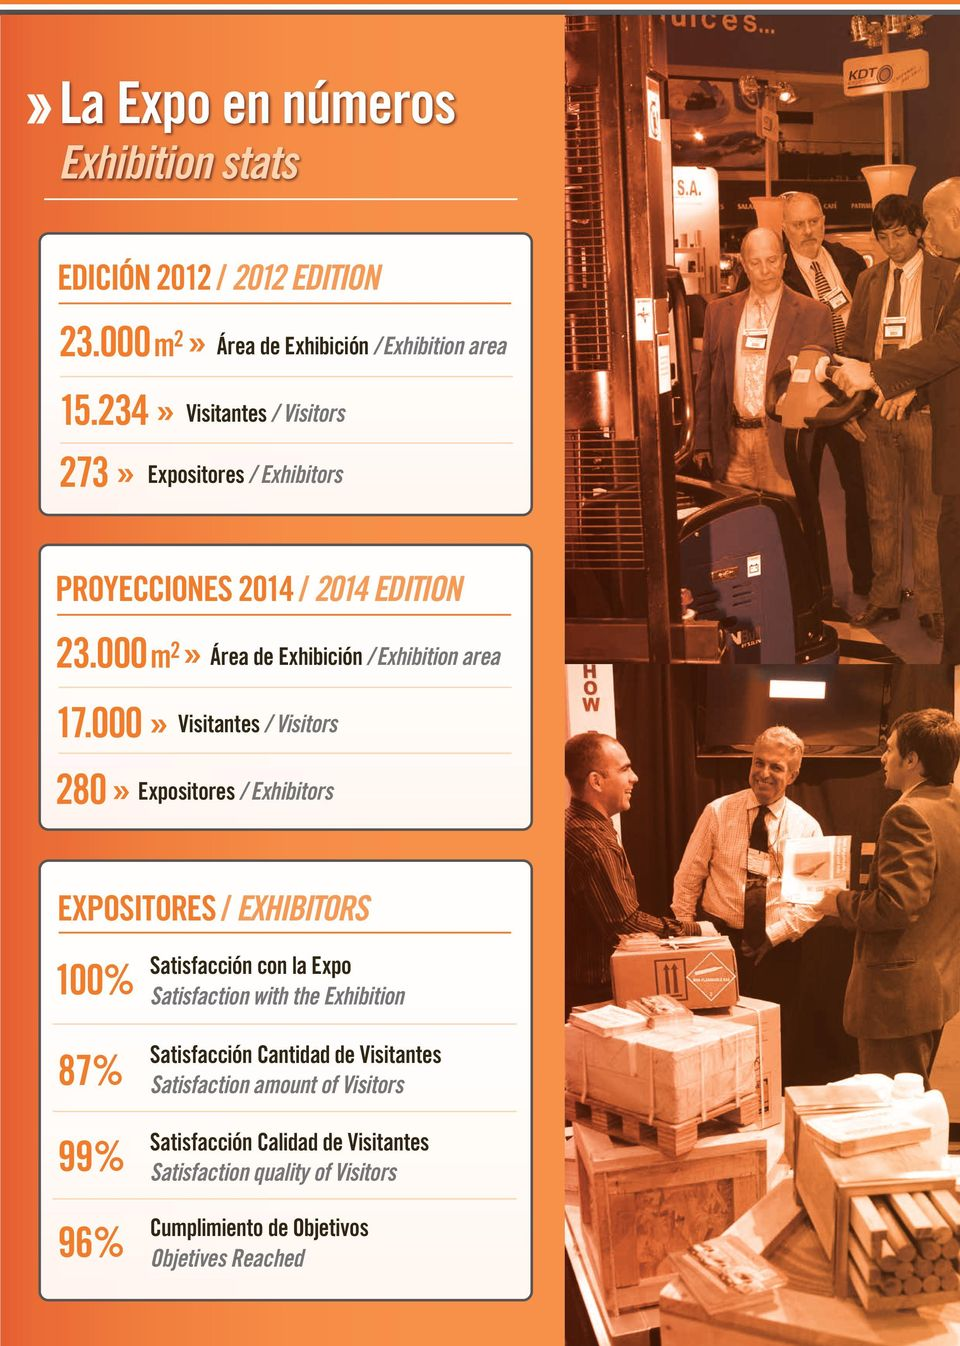 000» 280» Visitantes / Visitors Expositores / Exhibitors EXPOSITORES / EXHIBITORS 100% 87% 99% 96% Satisfacción con la Expo Satisfaction with the